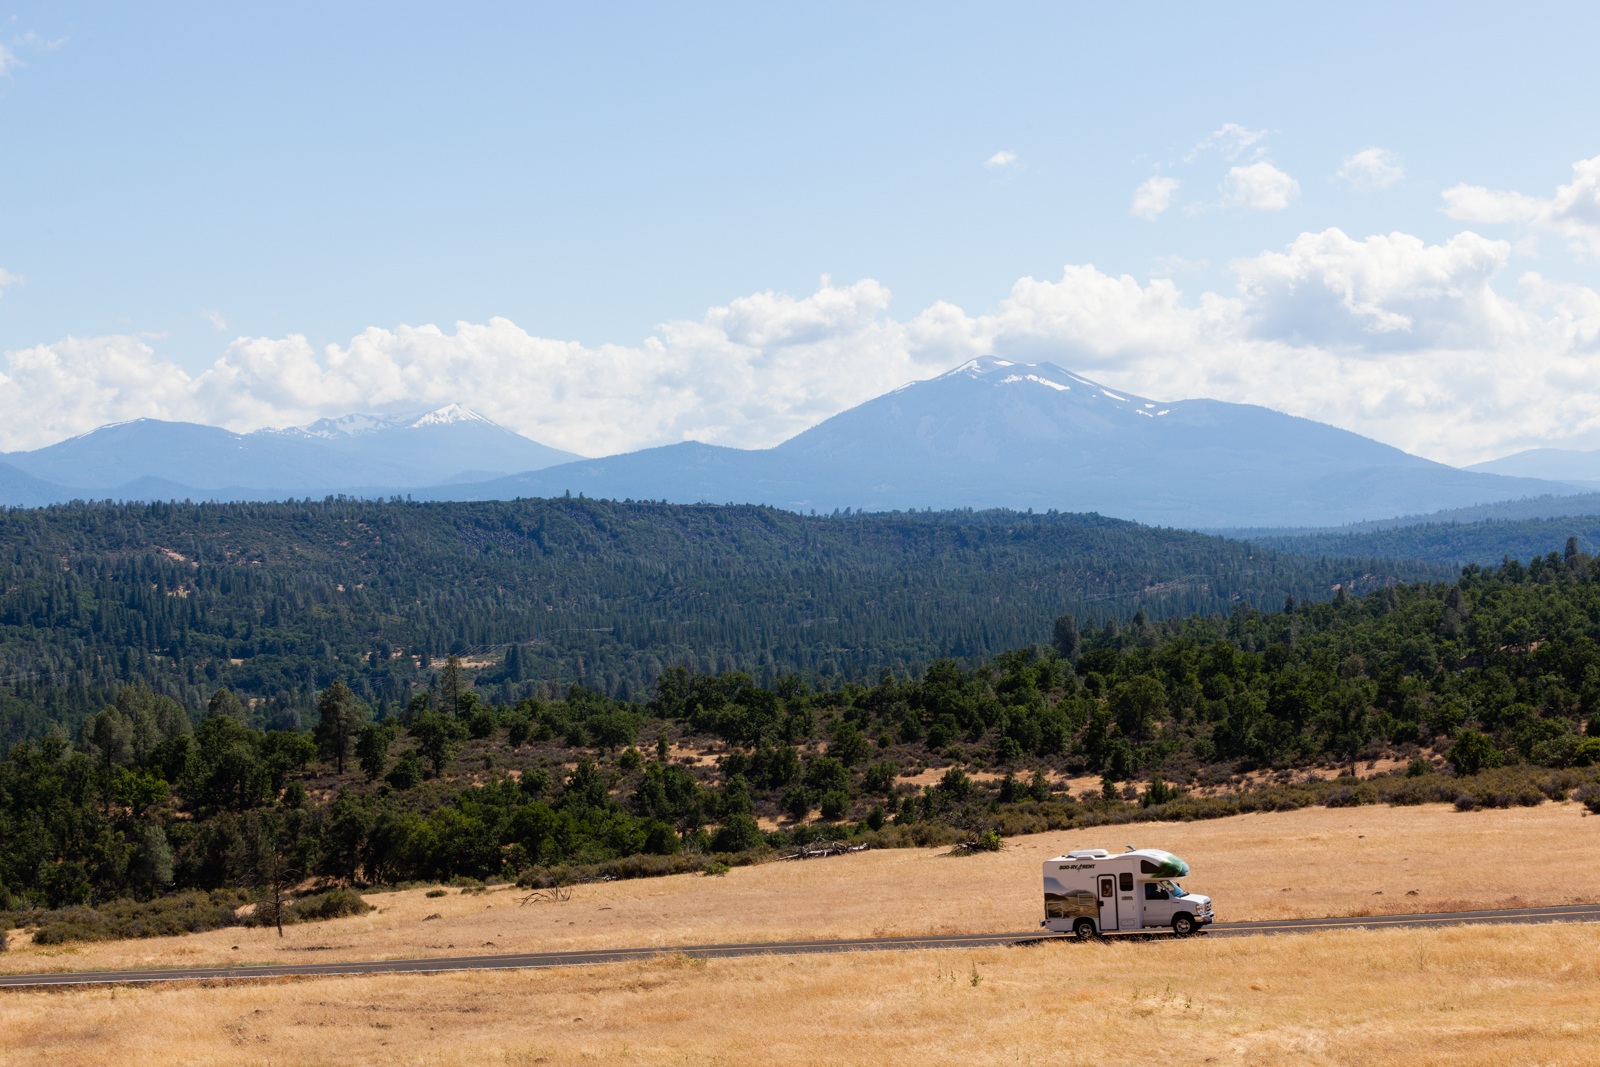 Driving through California's remote northeast.Credit:Andy Isaacson